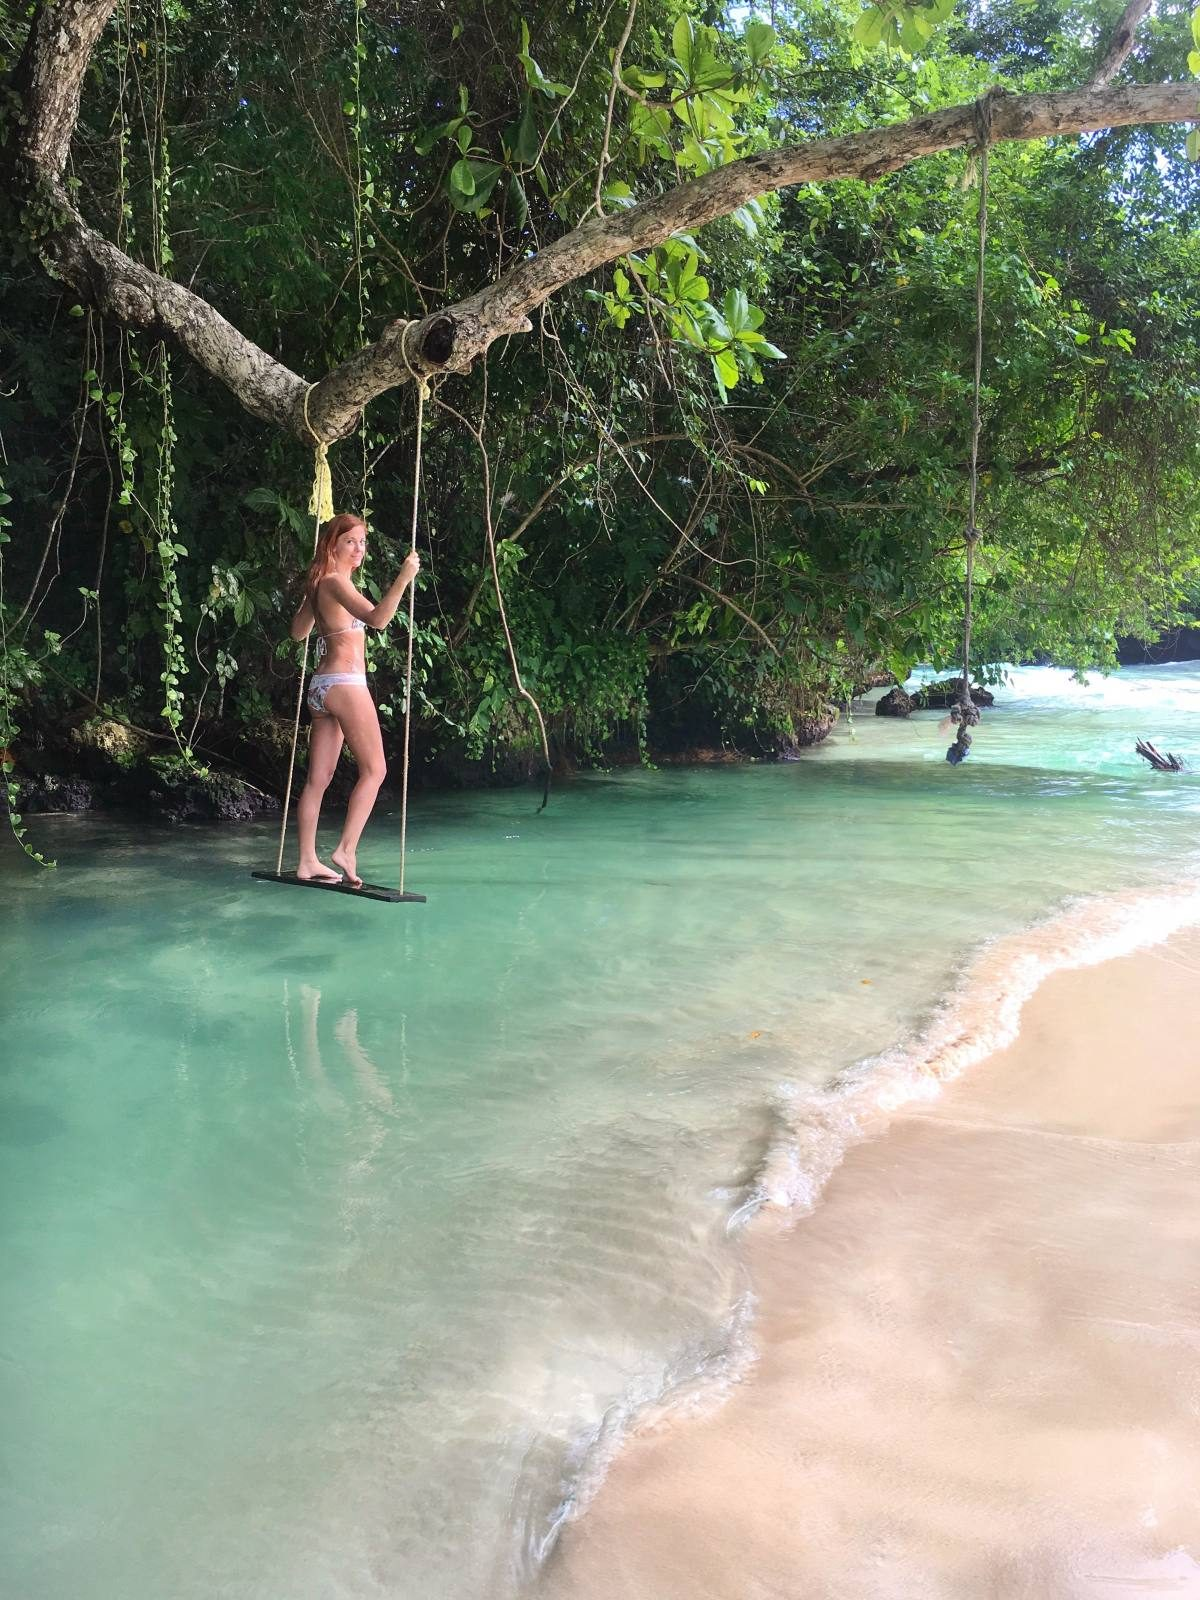 Hanging out at James Bond's beach in Jamaica!